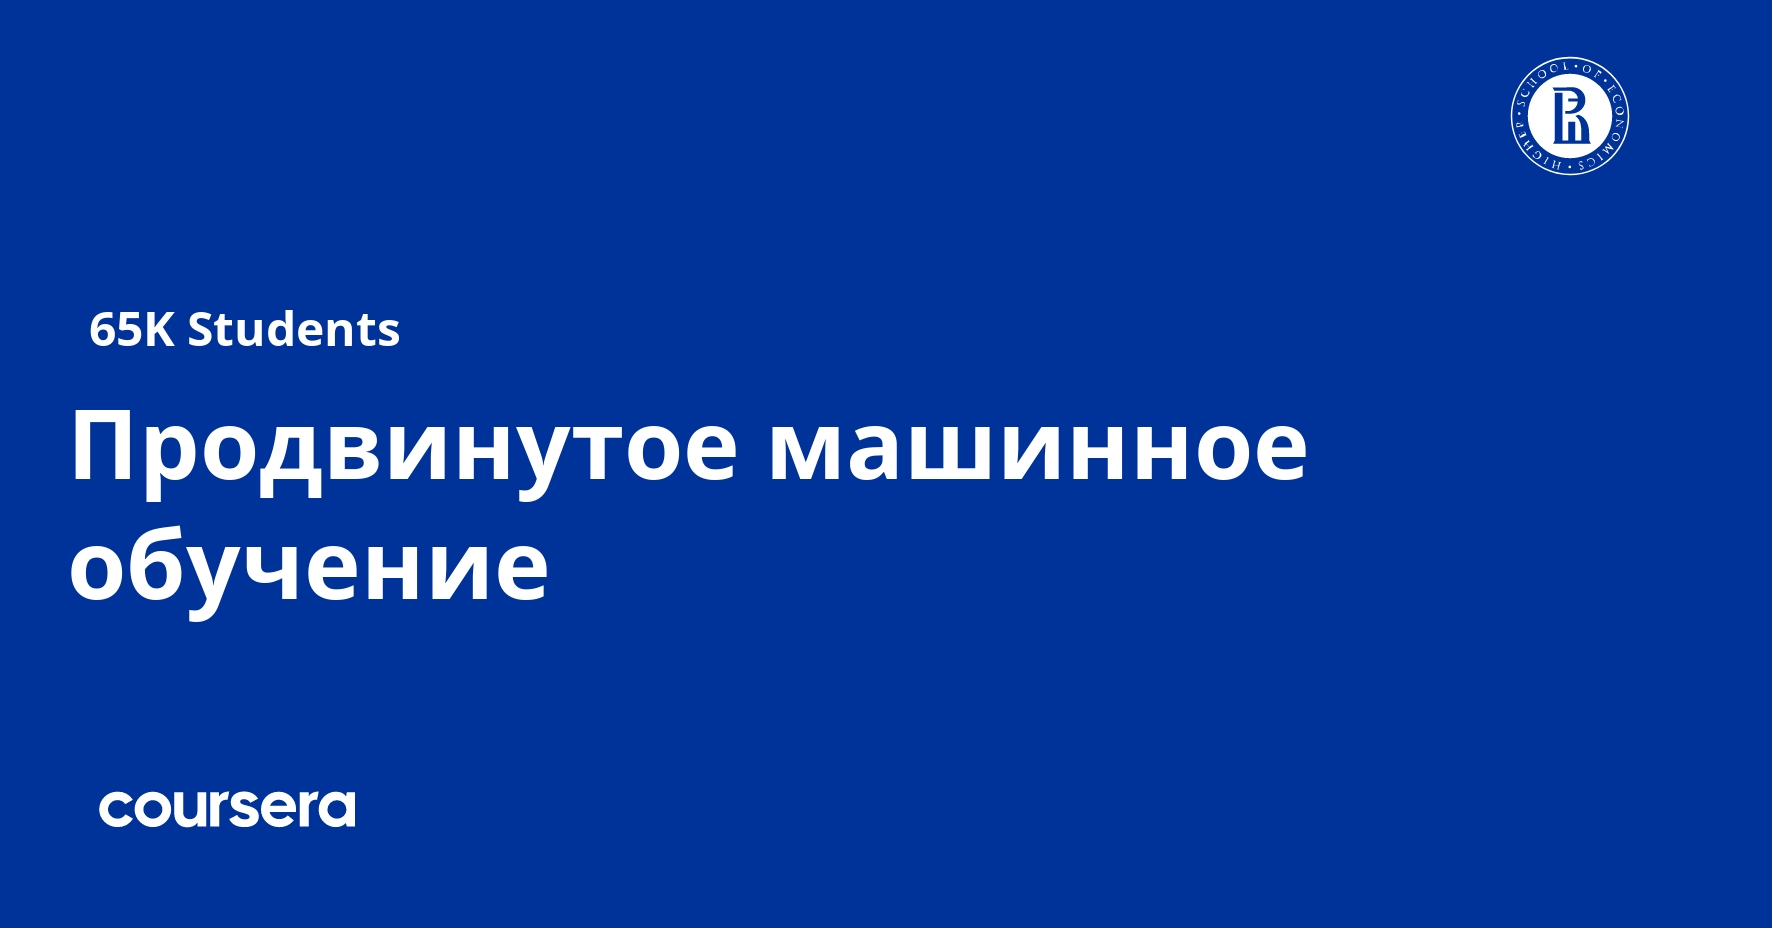 Advanced Machine Learning Coursera